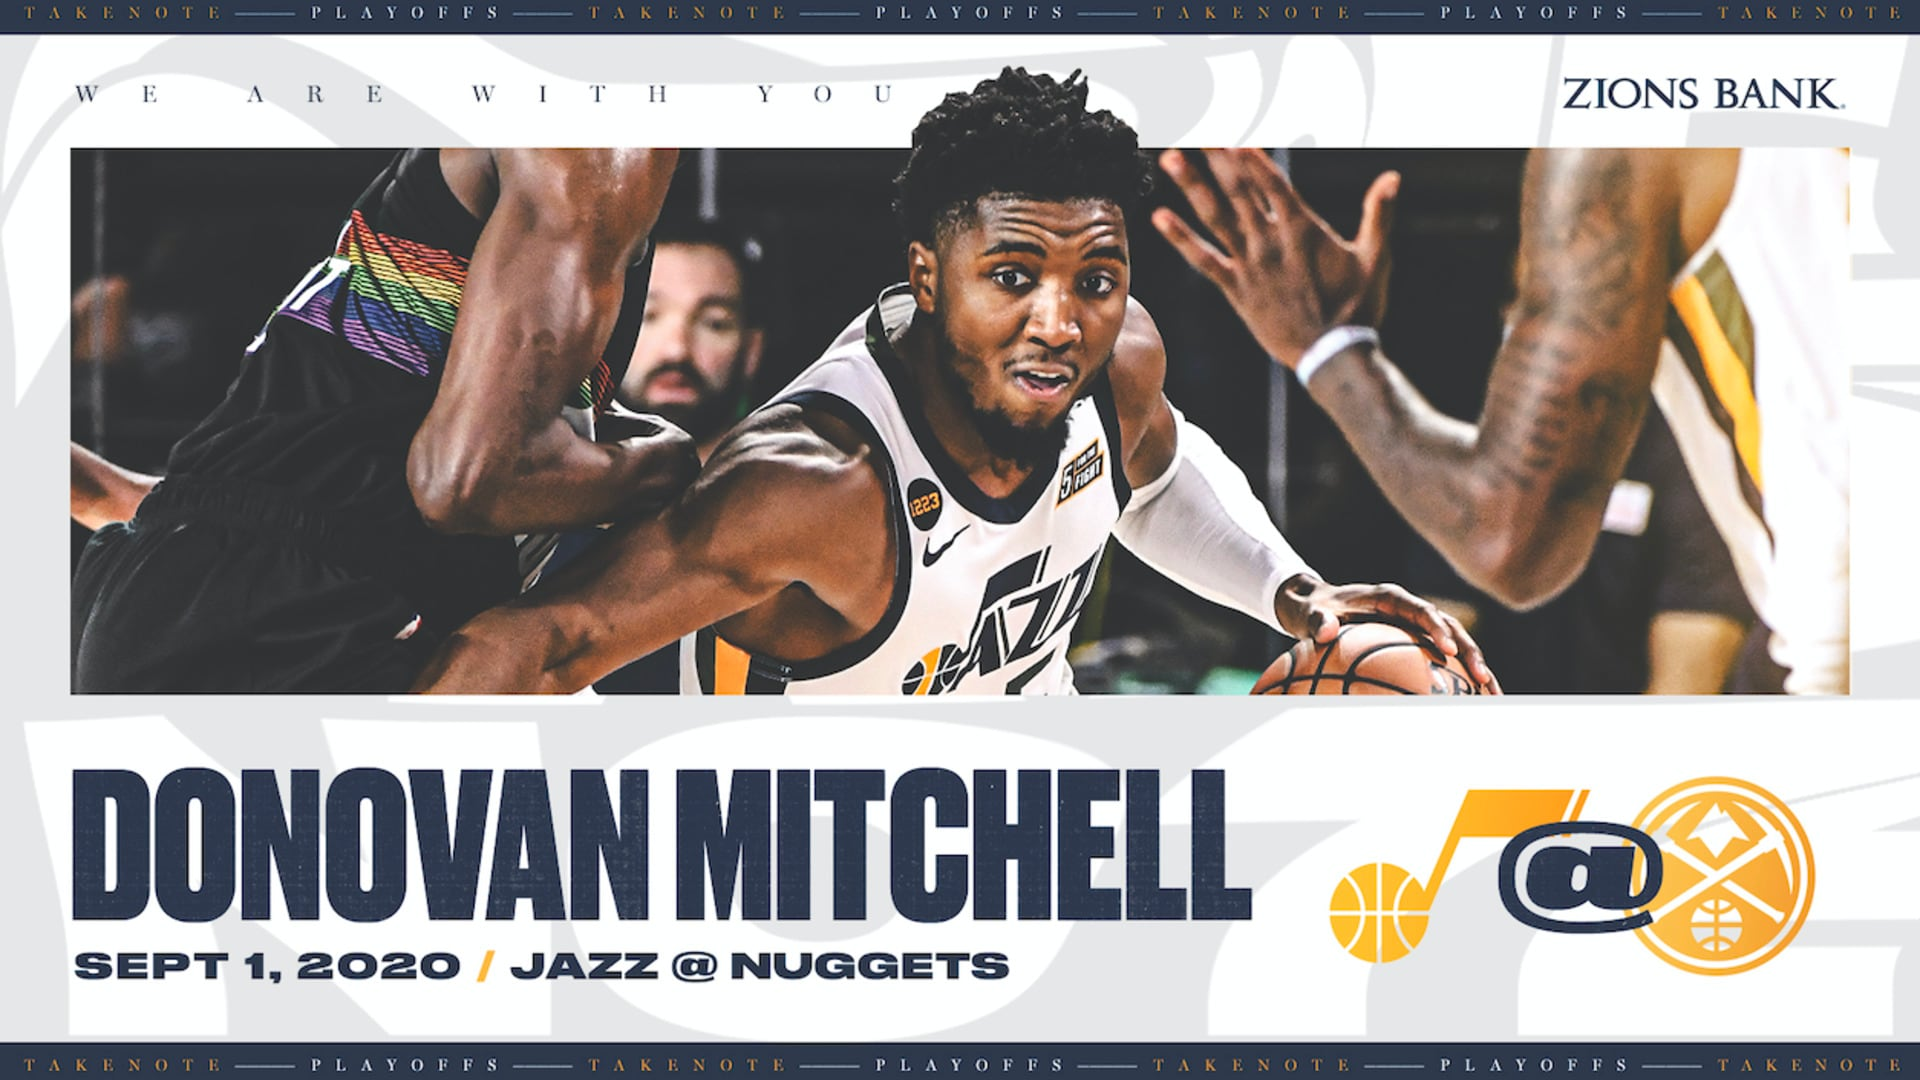 Highlights: Donovan Mitchell — 22 points, 9 rebounds